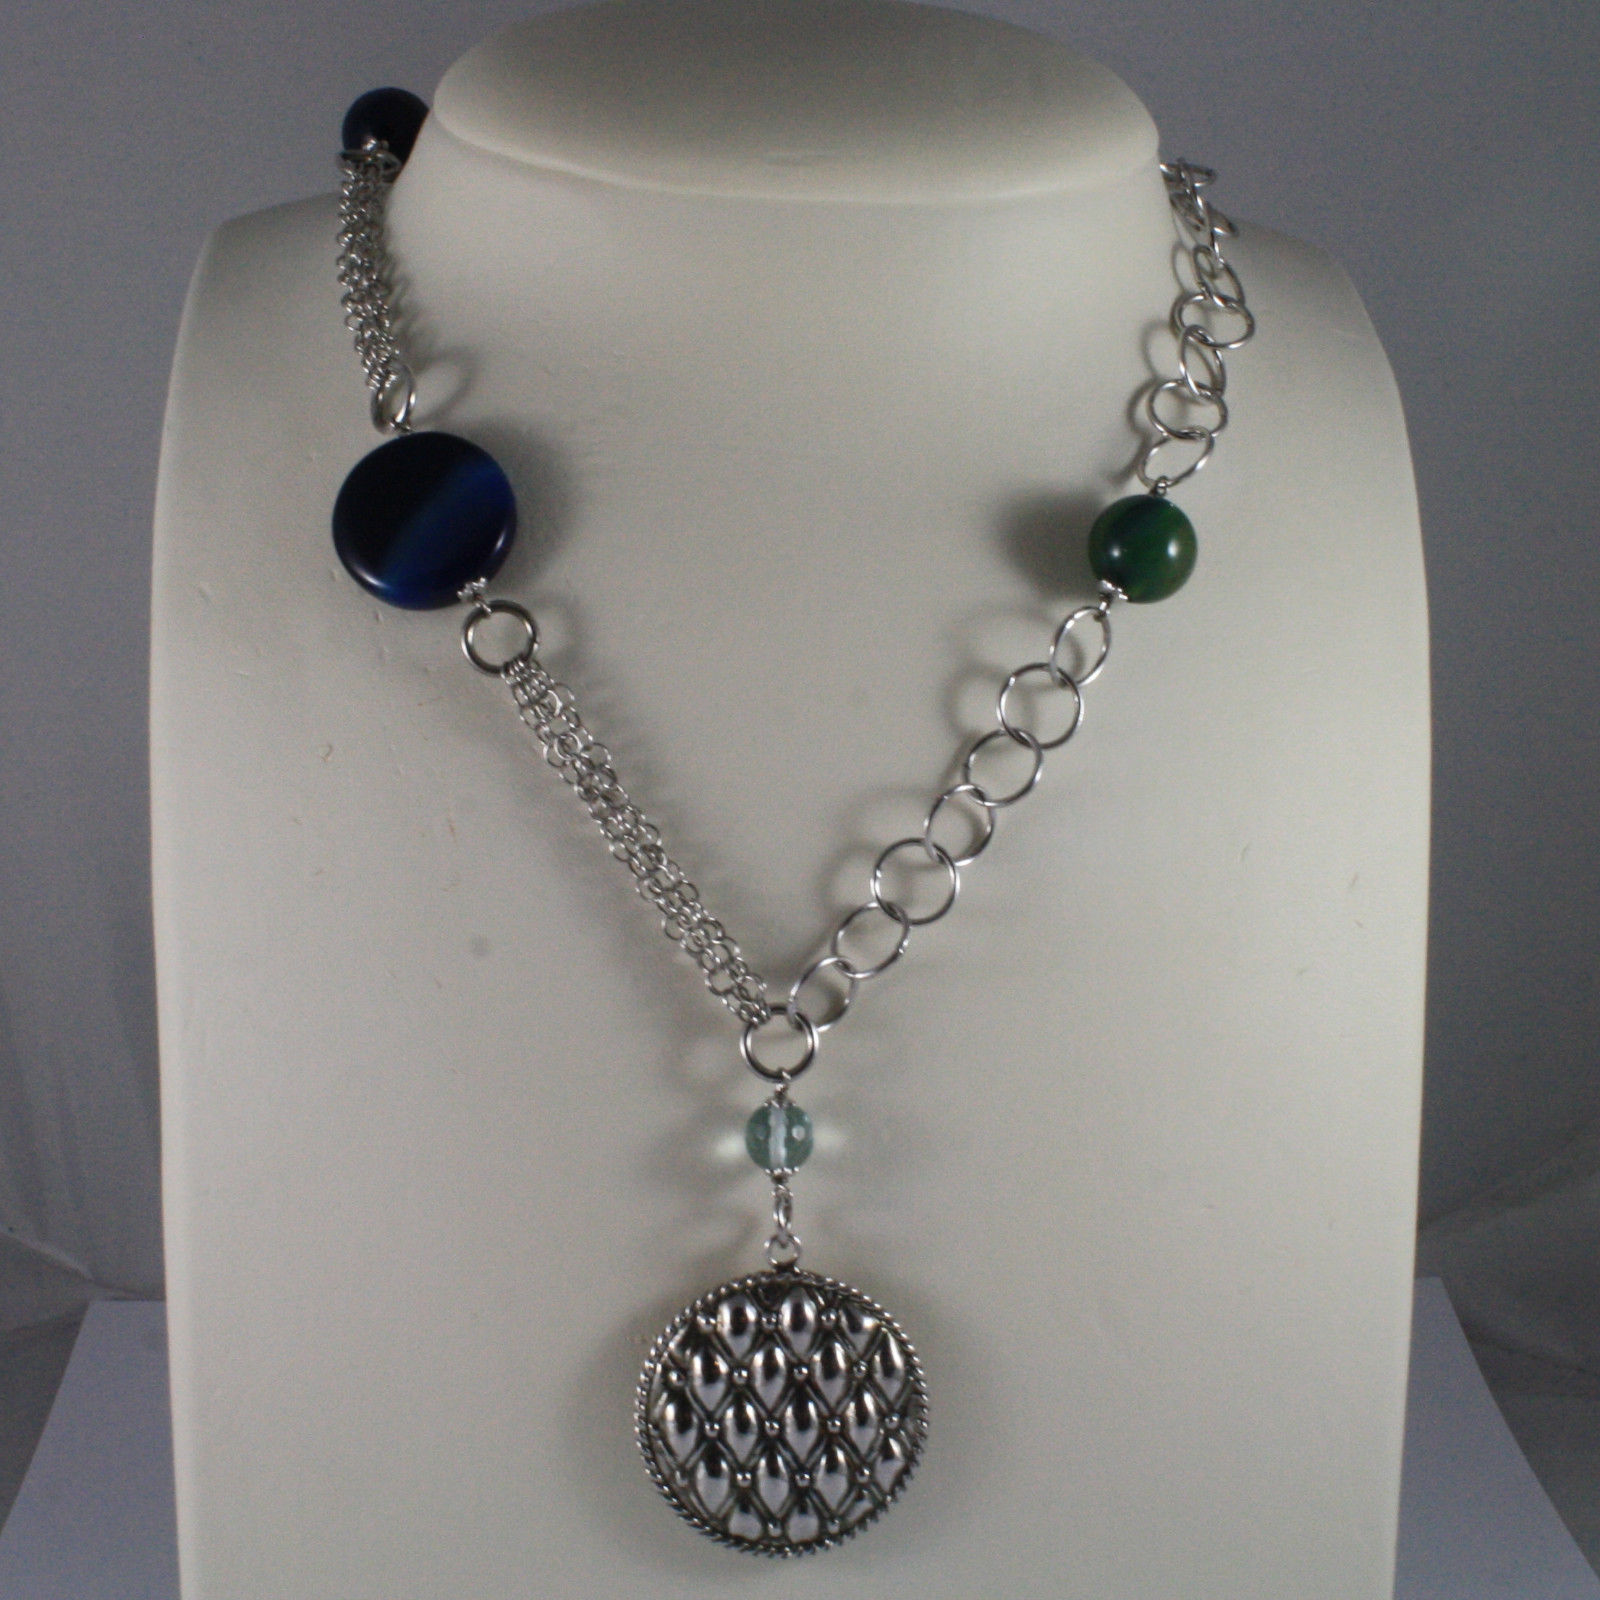 .925 SILVER RHODIUM NECKLACE WITH BLUE AND GREEN AGATE AND SILVER PENDANT